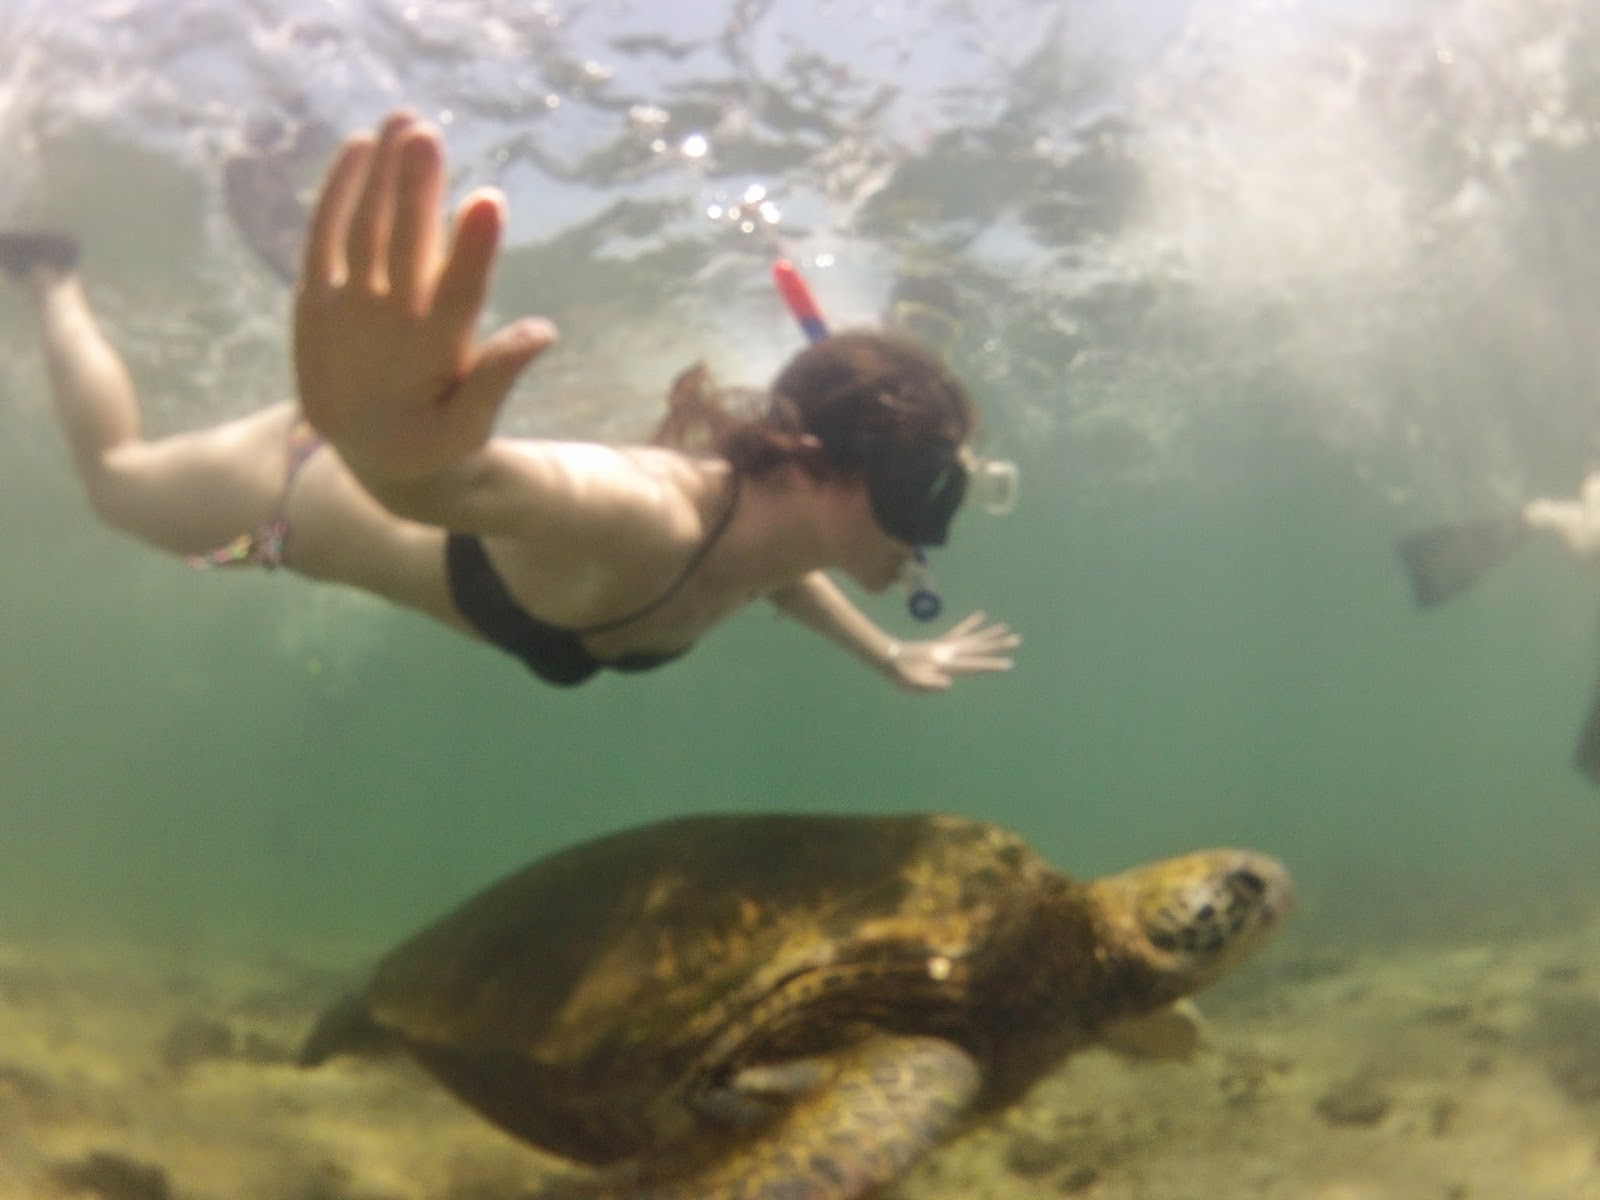 Just an average day, swimming with sea turtles.